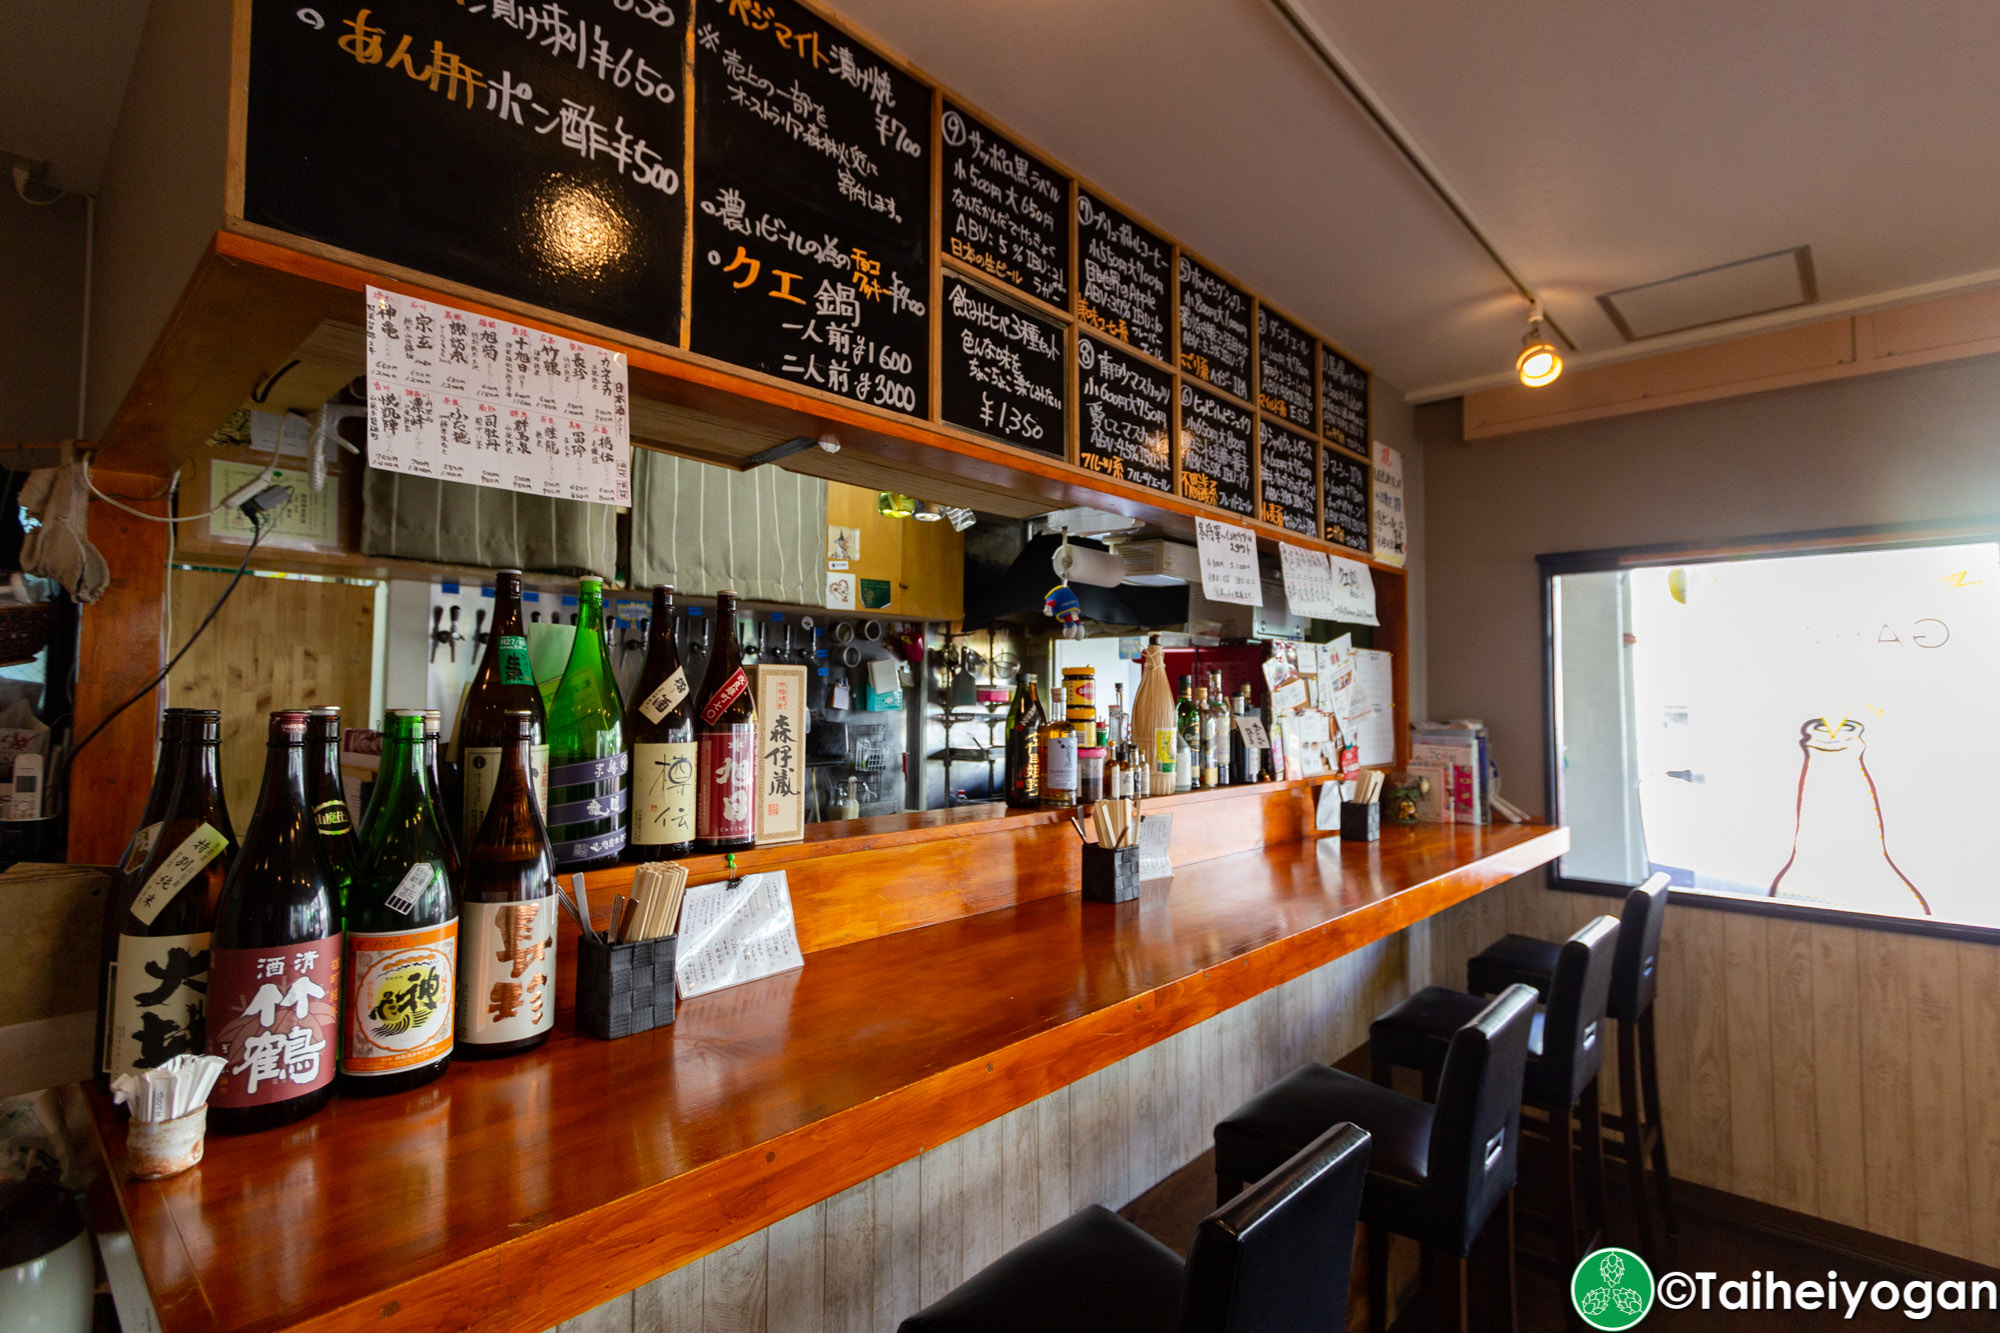 ガハハビール・Gahaha Beer - Interior - Bar Counter